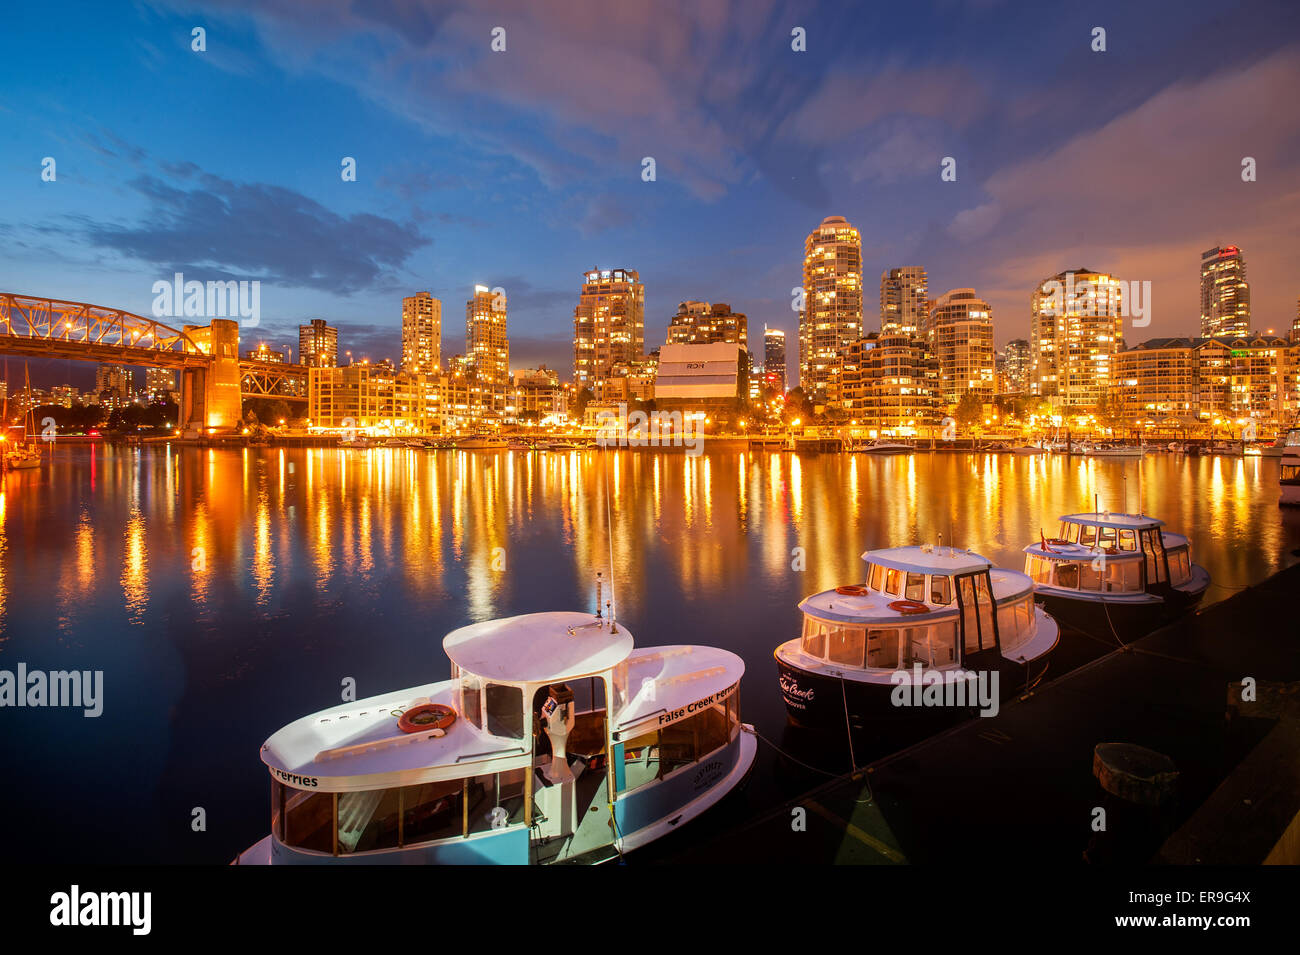 Vancouver Yaletown skyline and False Creek at dusk, as seen from Granville Island.  Vancouver ferry boats at sunset - Stock Image